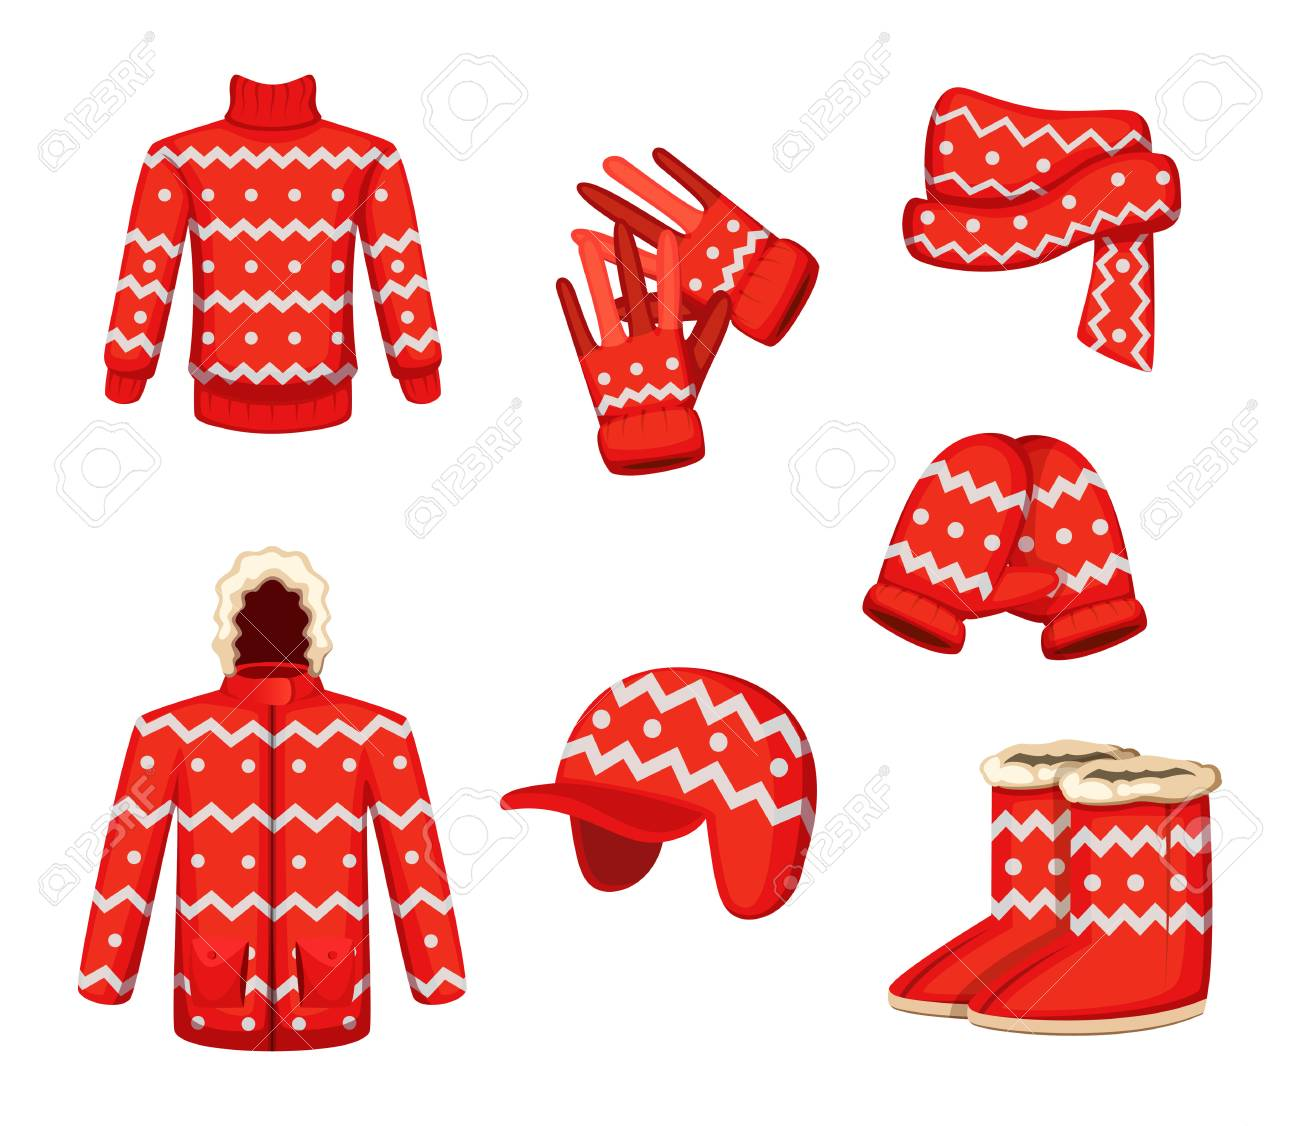 Clothes At Christmas Holiday Style Vector Illustrations For